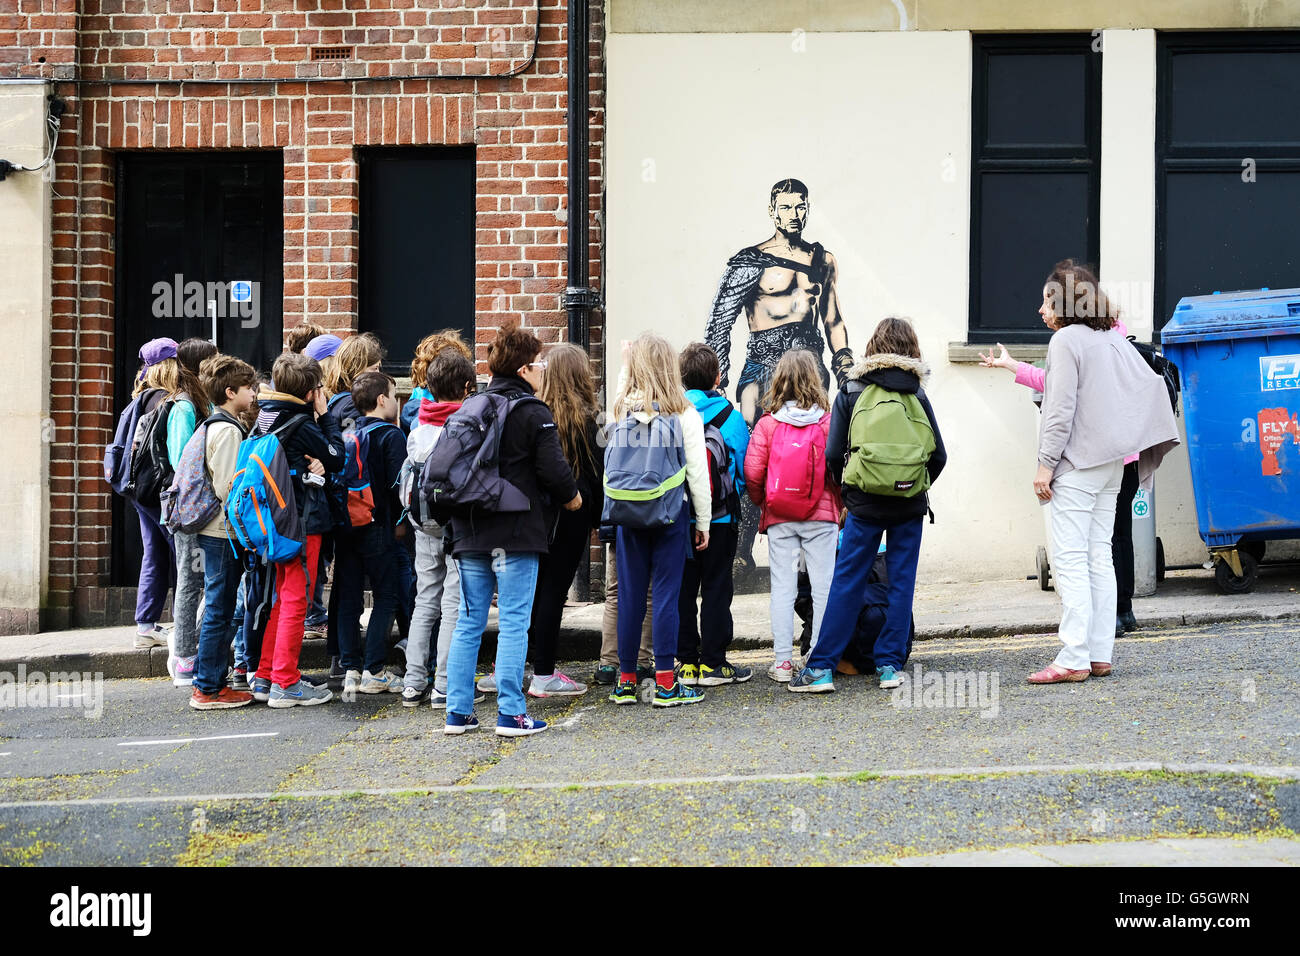 A group of school children being shown graffiti in a city street - Stock Image